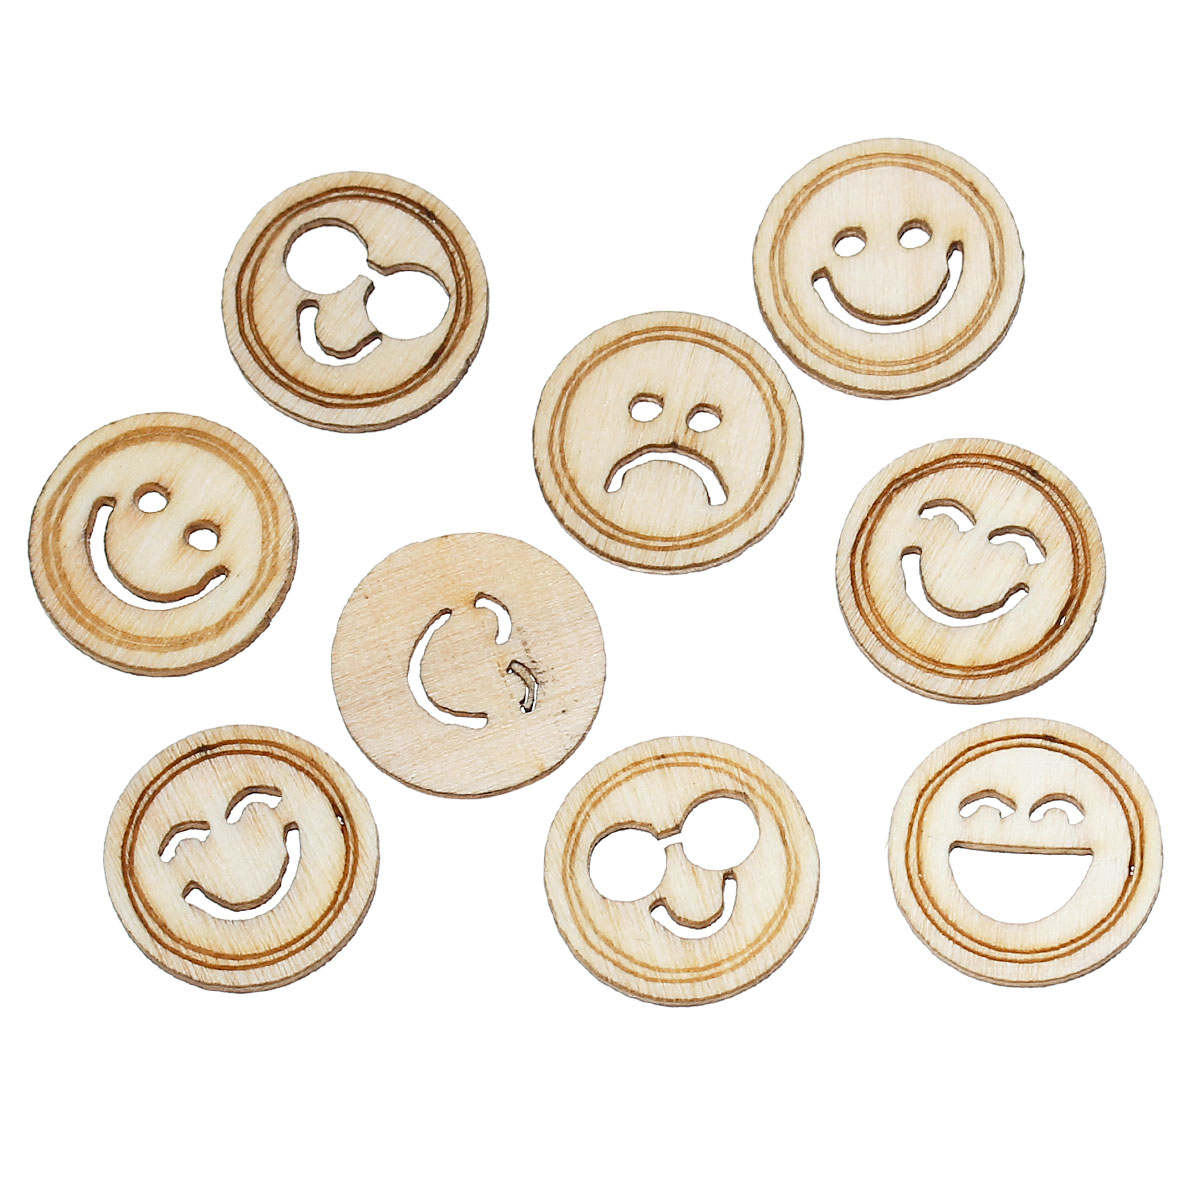 Wood Cabochons Scrapbooking Embellishments Findings Round Natural At Random Pattern 18mm(6/8)Dia,100 PCs new